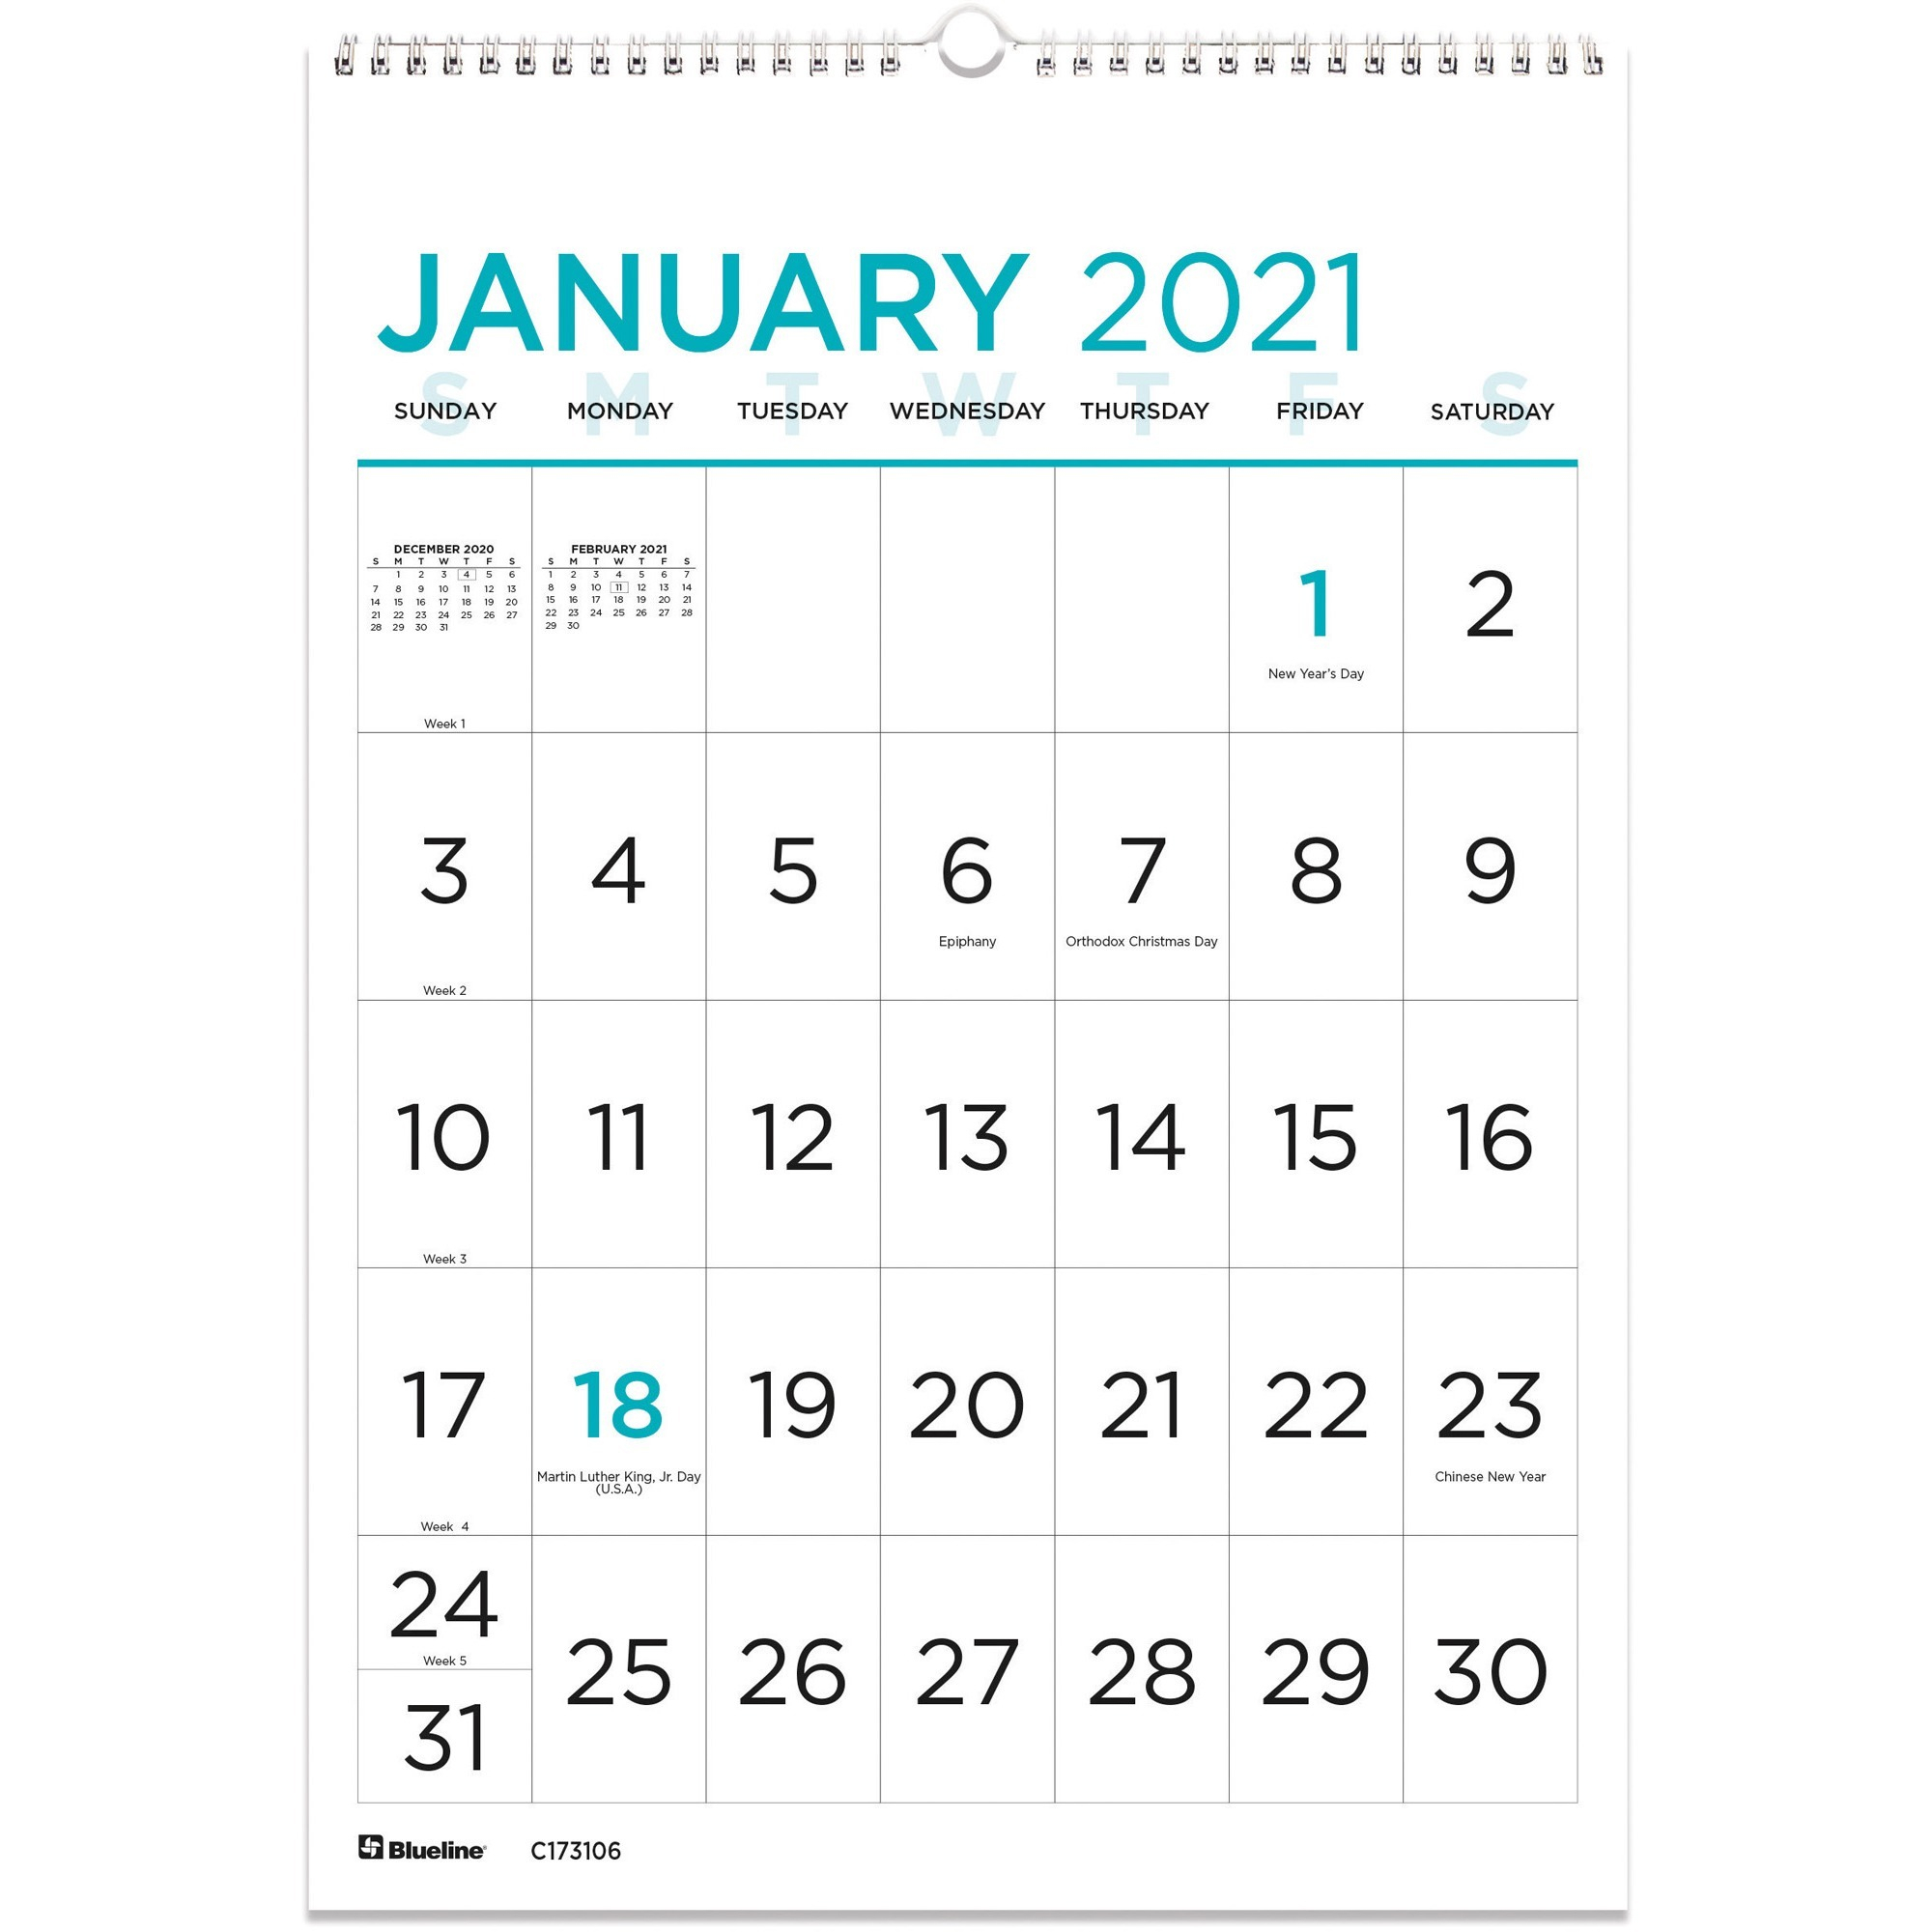 Blueline Large Print Wall Calendar - Monthly - 1 Year